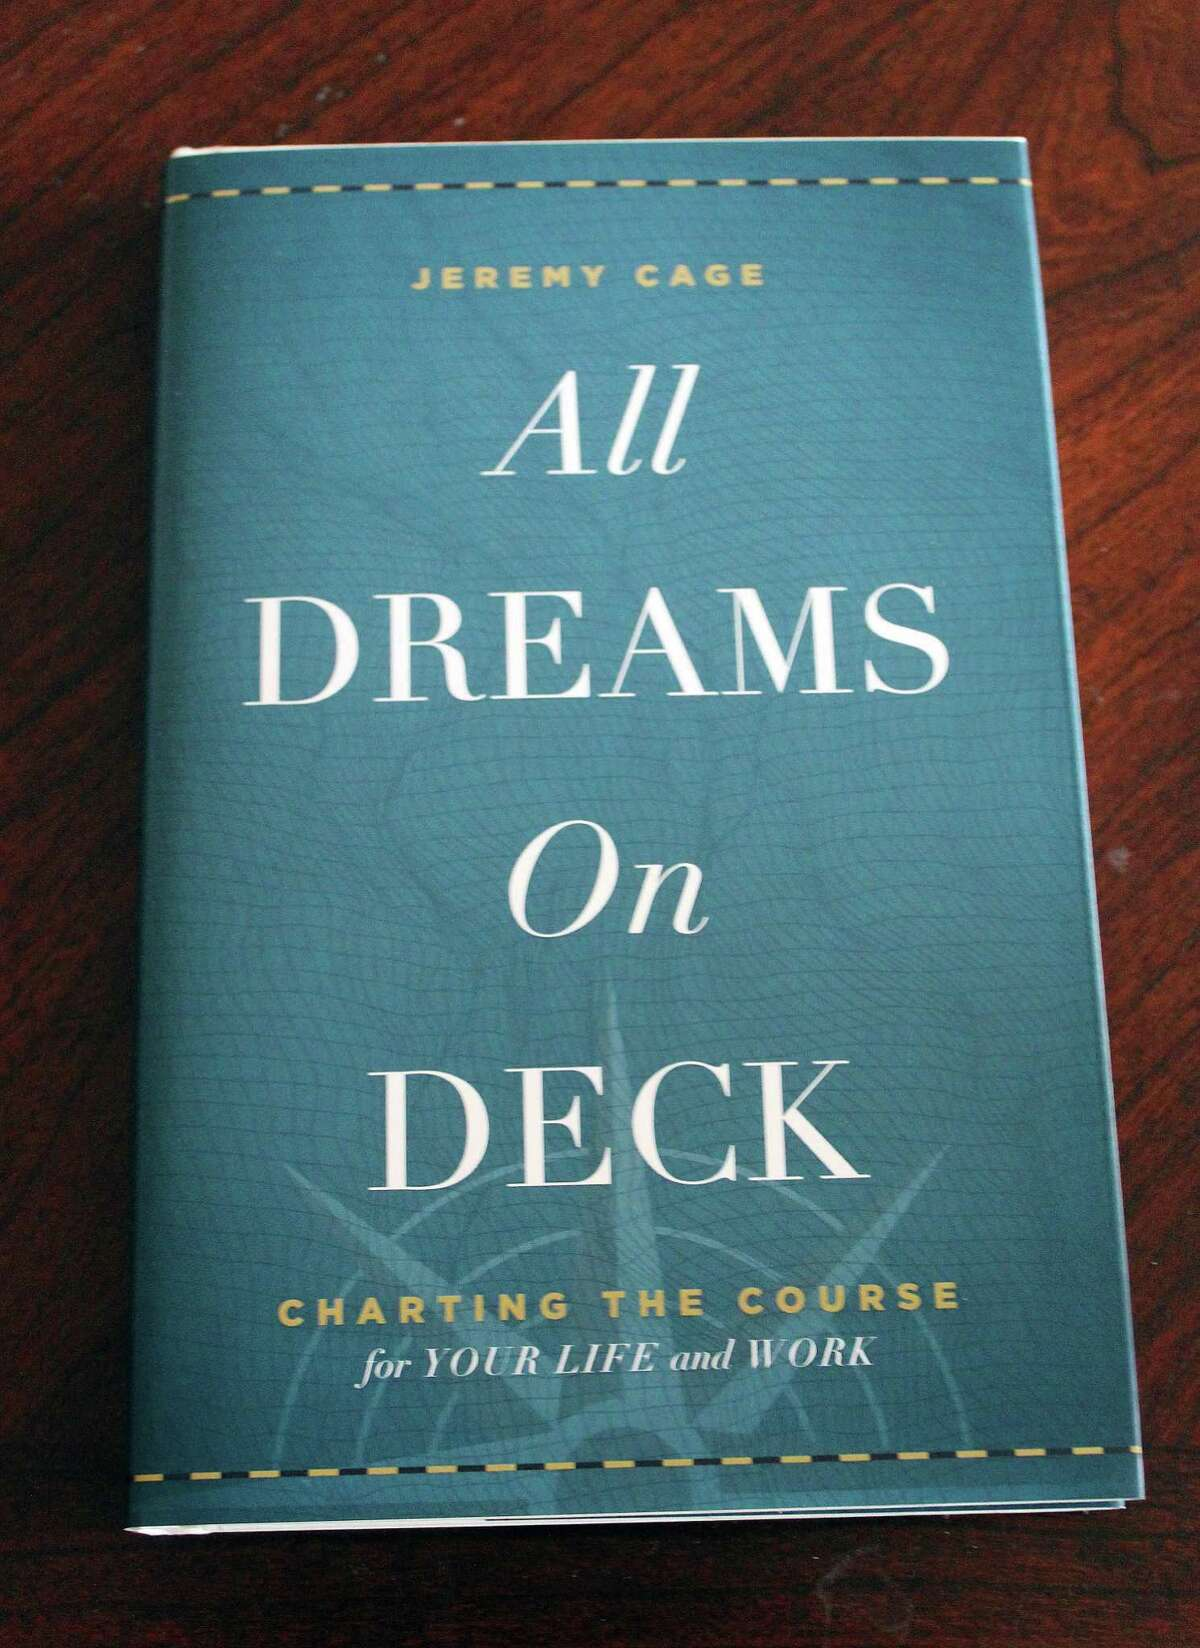 """Darien resident Jeremy Cage released his book """"All Dreams on Deck: Charting the Course for Your Life and Work"""" on Jan. 17."""